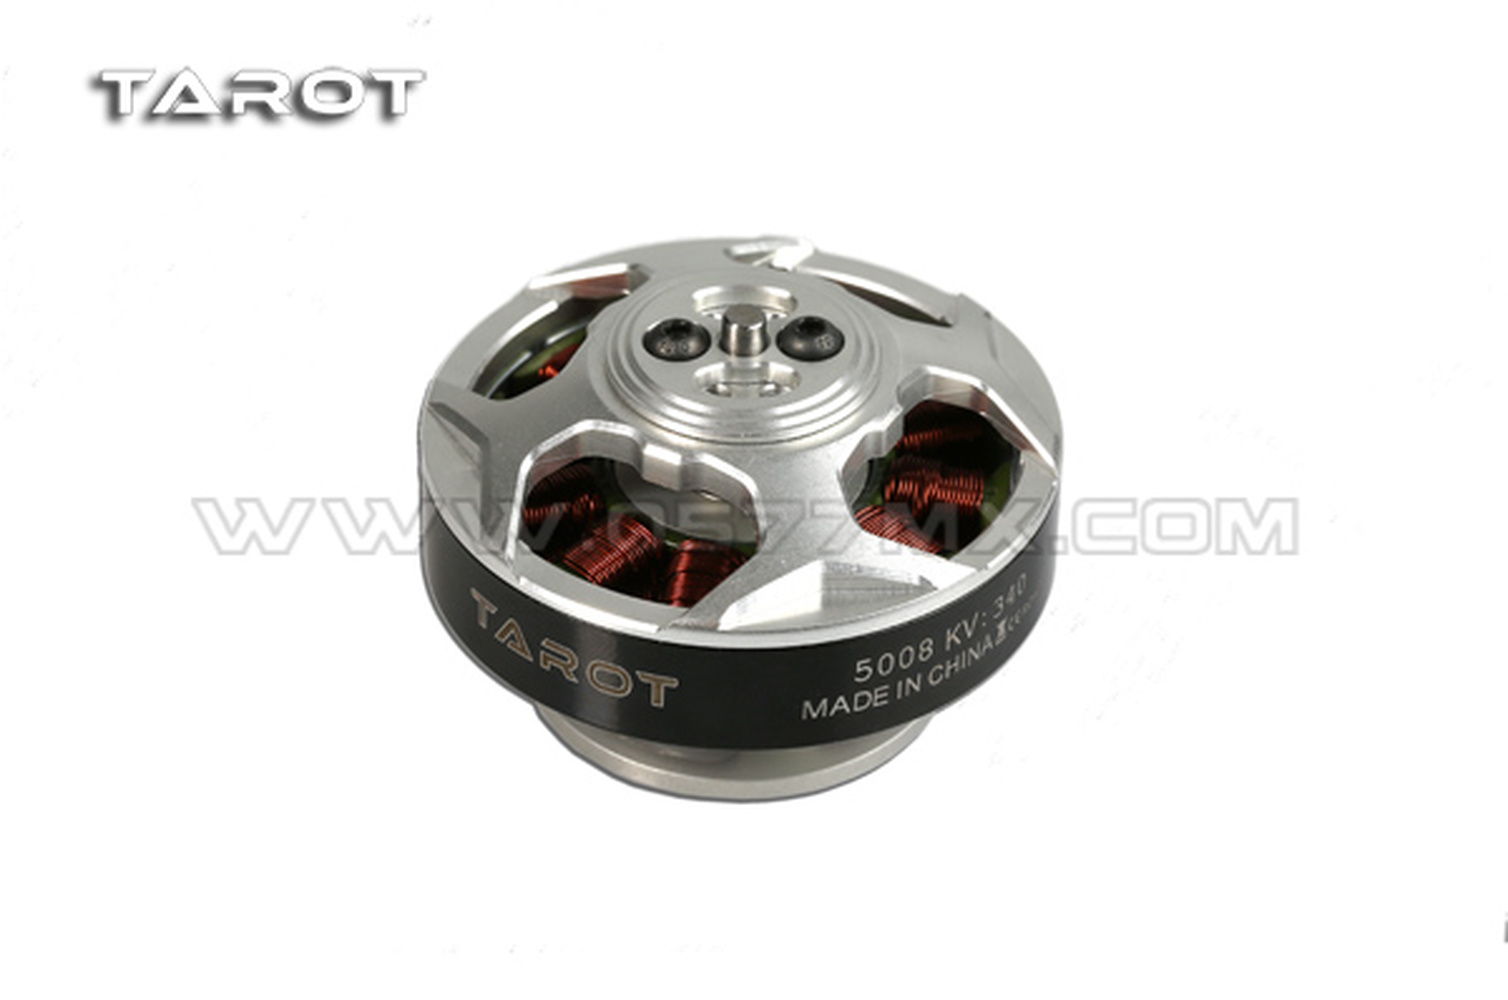 F-Cloud Fly Over Tarot TAROT 5008/340KV Multi-rotor Brushless Motor TL96020 tarot multi rotor brushless motor tl96020 5008 340kv free shipping with tracking page 3 page 2 page 5 page 5 page 5